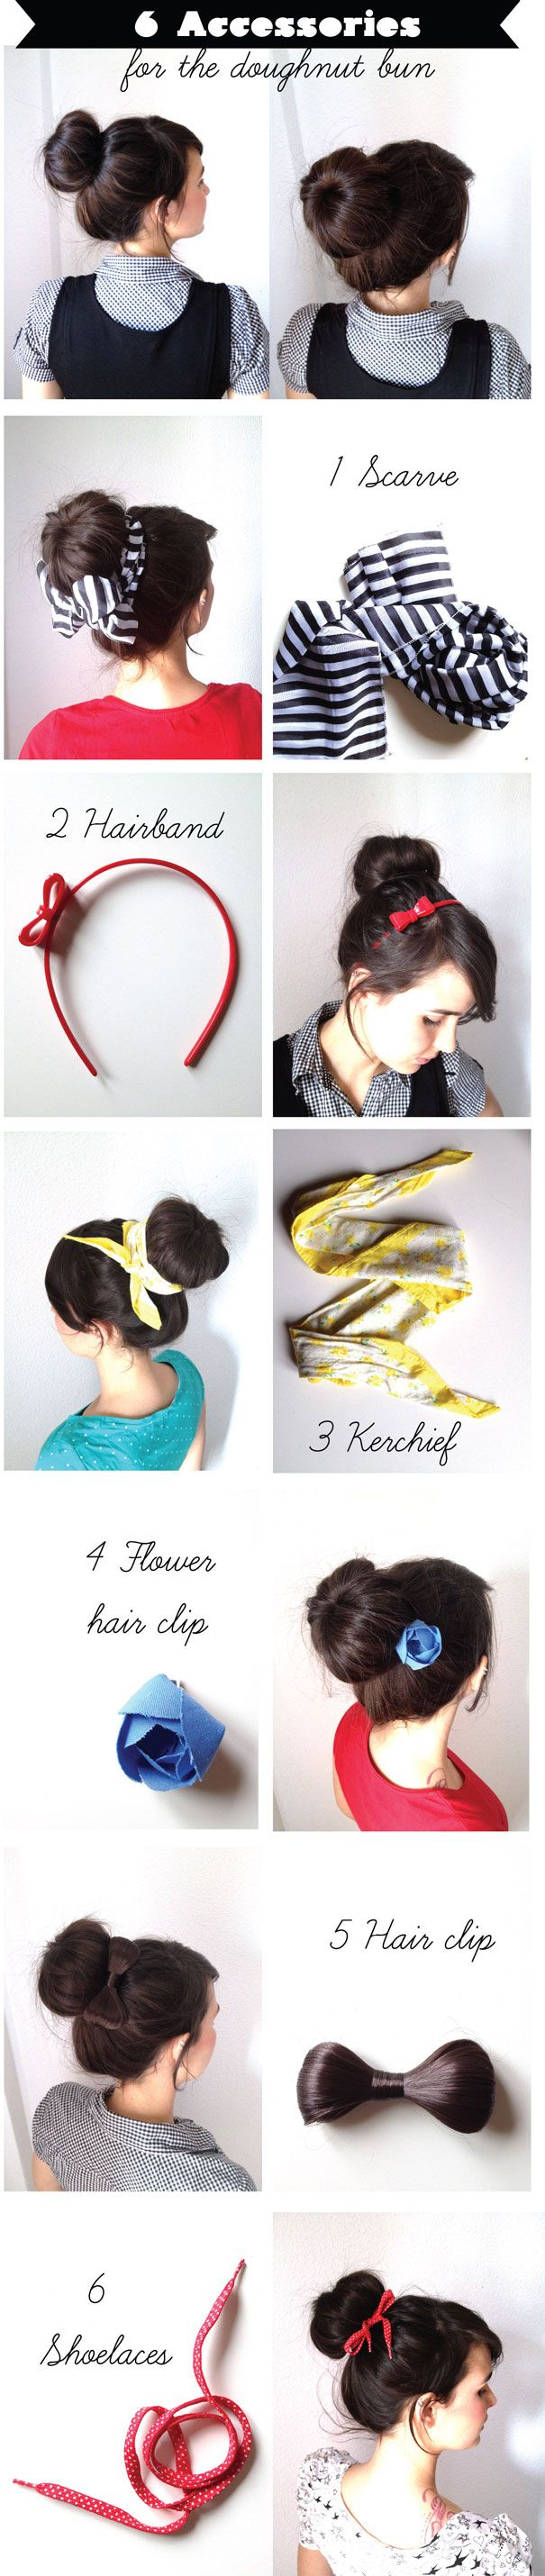 accessories for a bun - ive never thought of shoelaces before.